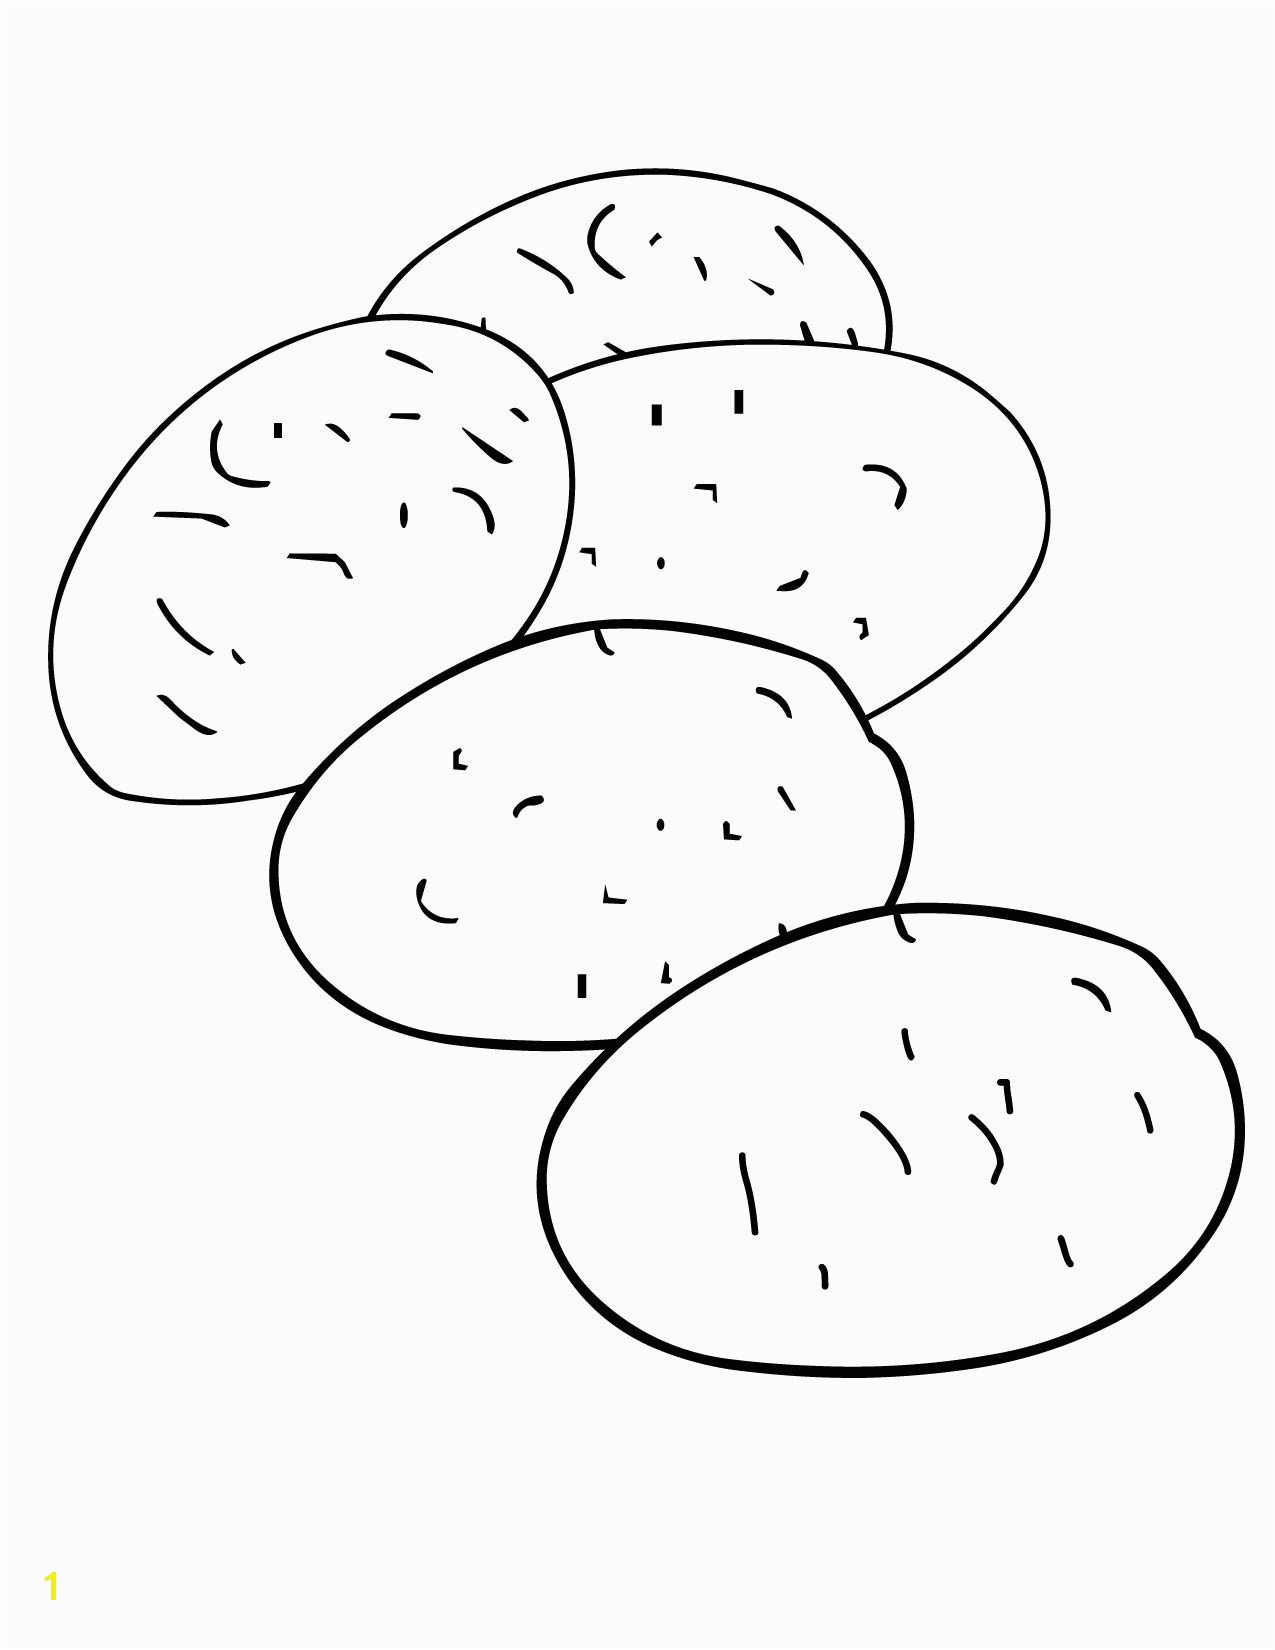 Sweet Potato Coloring Page Collection Of Coloring Pages Of Potatoes